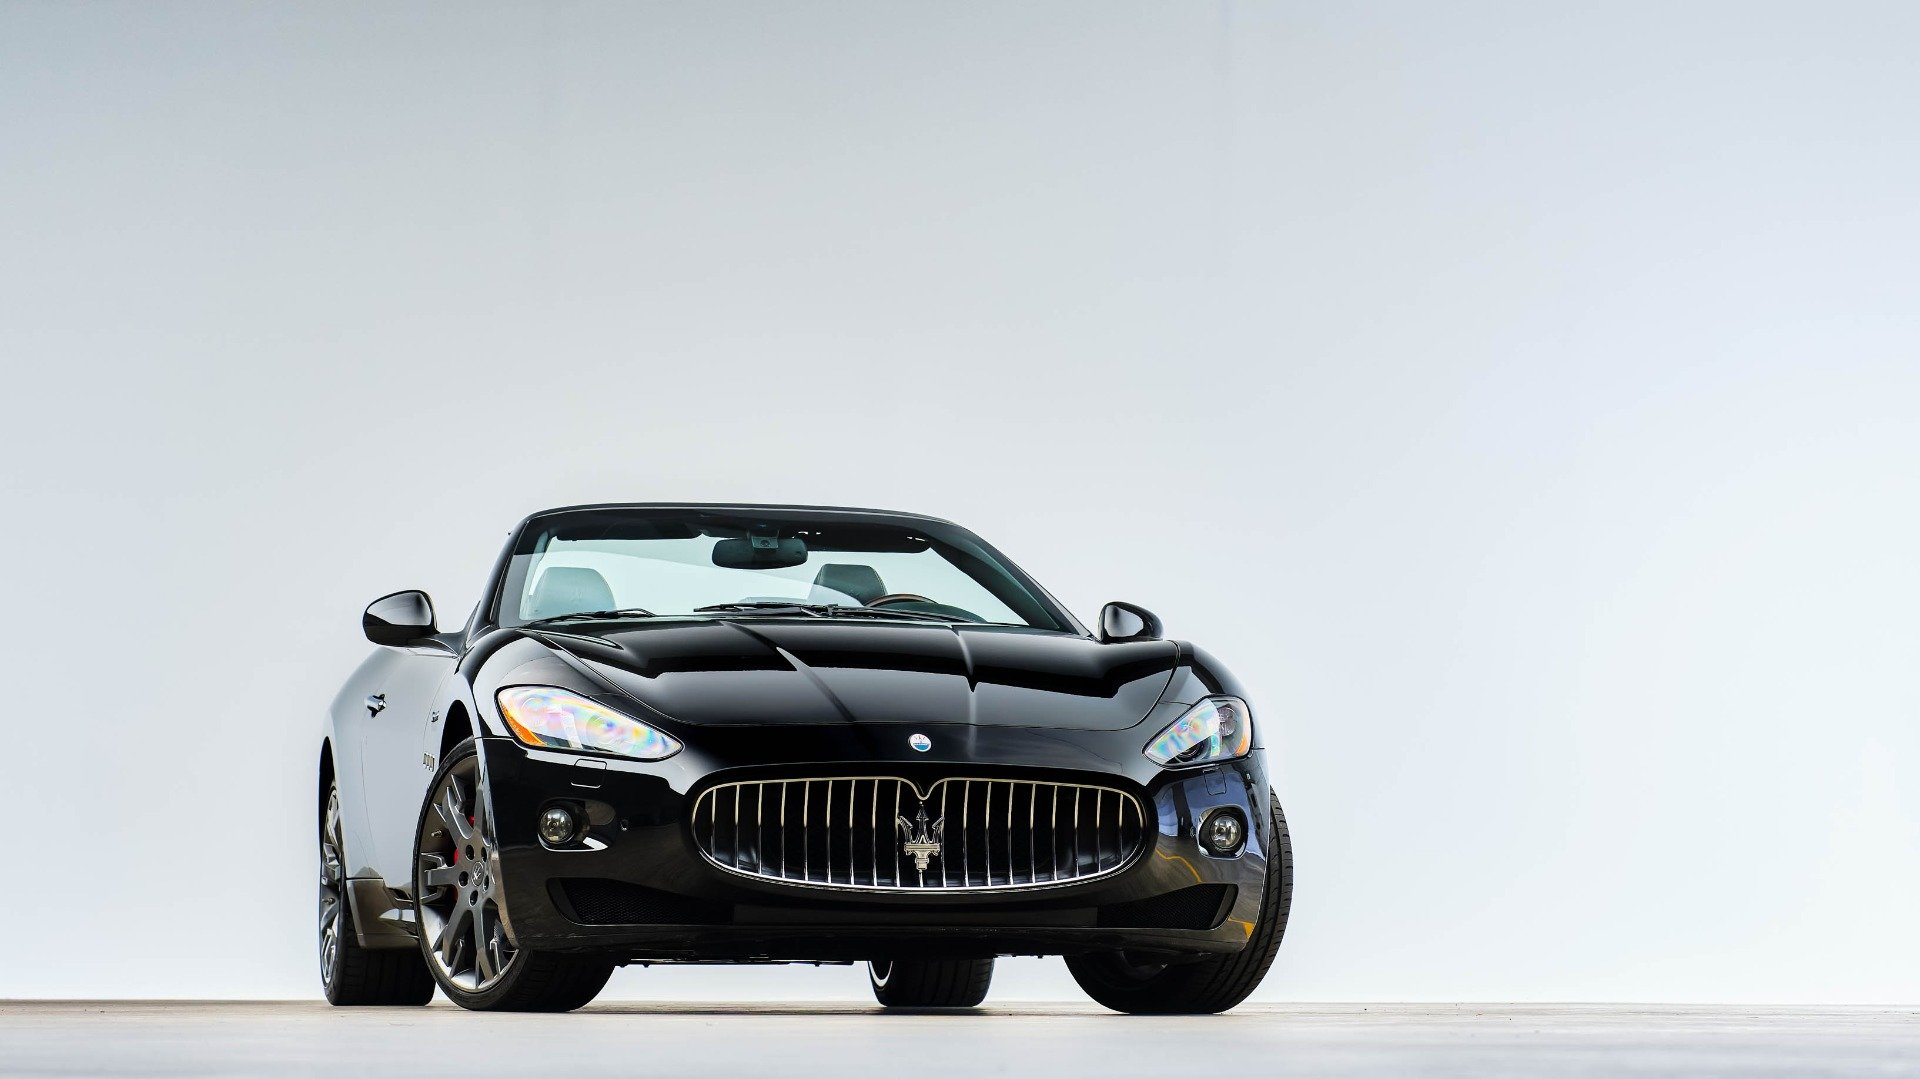 2015 Maserati GranTurismo Convertible 38k miles Black $48.9k For Sale (picture 4 of 12)